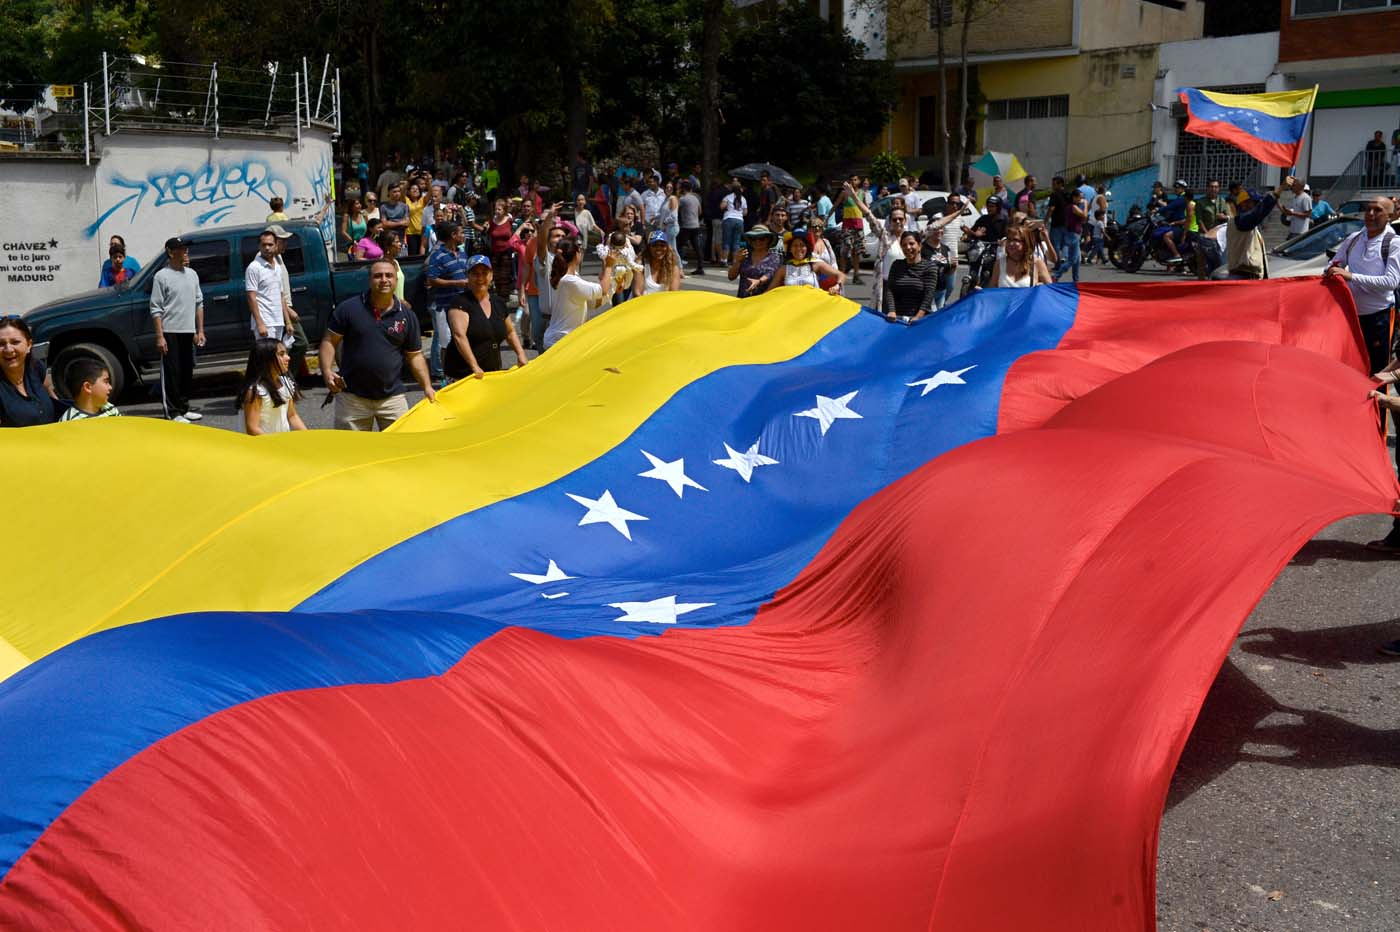 People gather in Caracas on July 16, 2017 during an opposition-organized vote to measure public support for President Nicolas Maduro's plan to rewrite the constitution. Authorities have refused to greenlight the vote that has been presented as an act of civil disobedience and supporters of Maduro are boycotting it. Protests against Maduro since April 1 have brought thousands to the streets demanding elections, but has also left 95 people dead, according to an official toll. / AFP PHOTO / FEDERICO PARRA